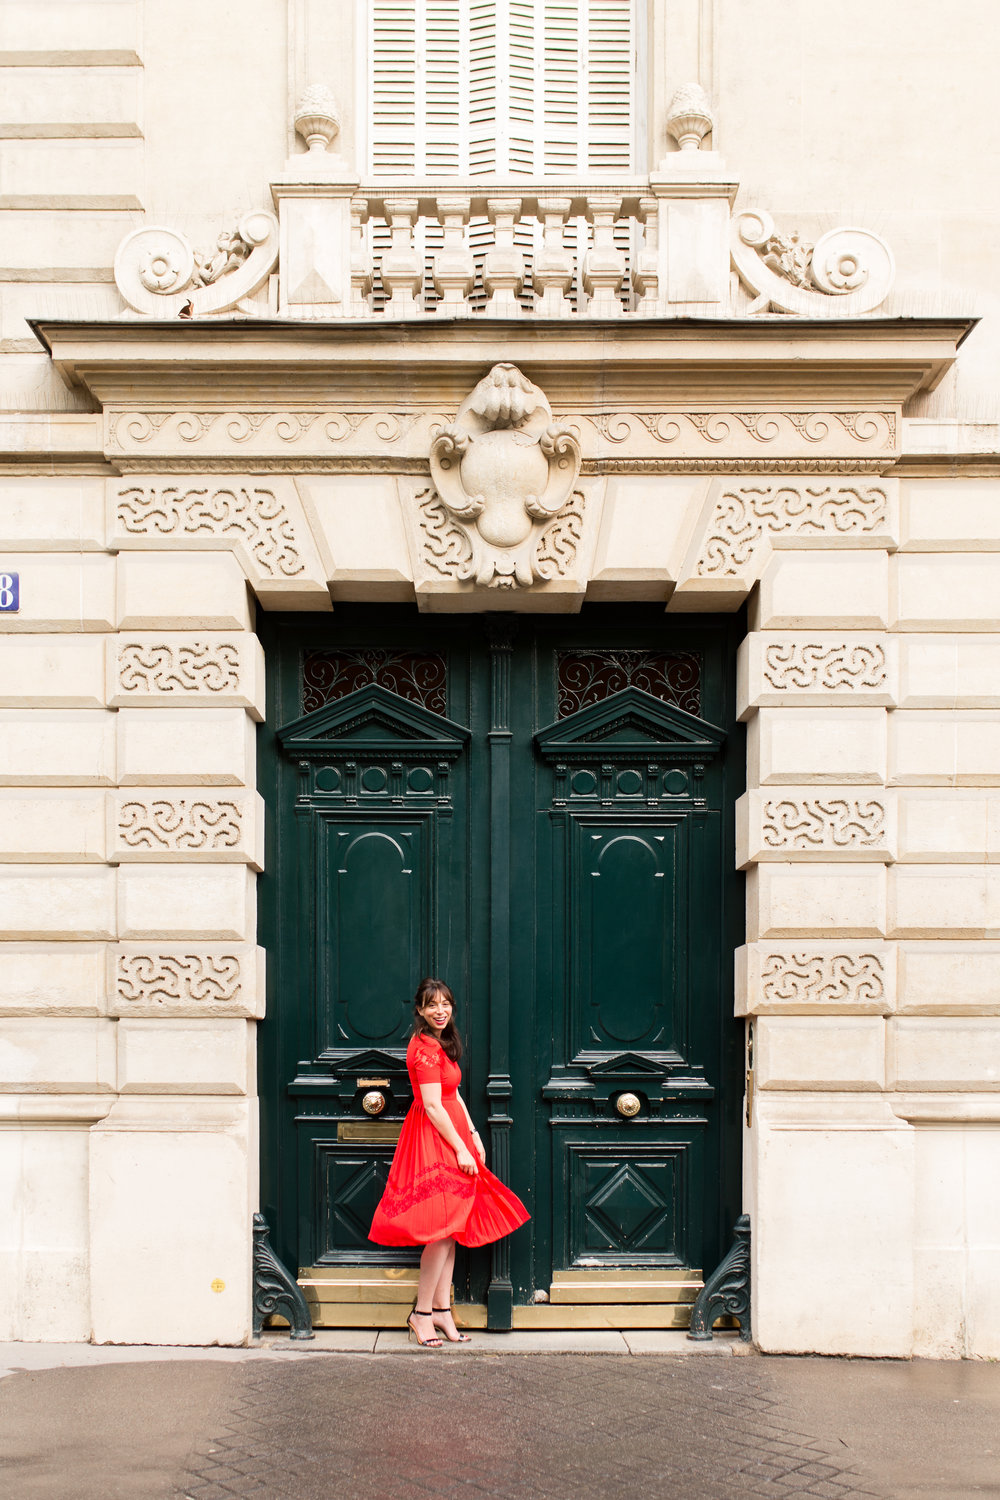 rebecca plotnick in paris red dress by katie donnelly